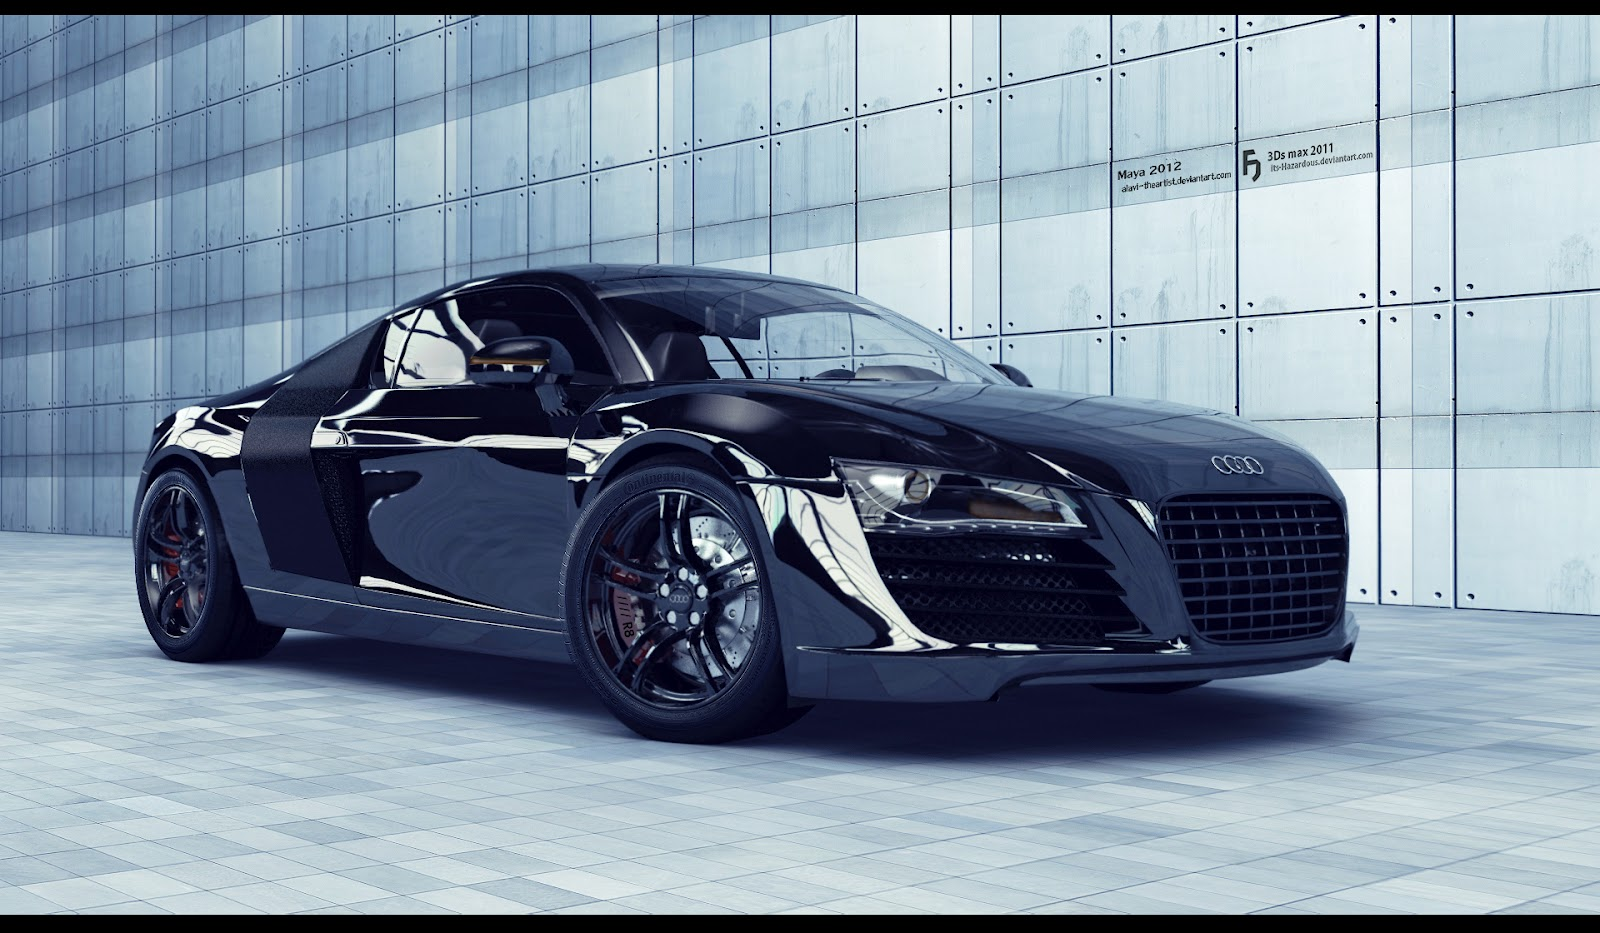 Cars Wallpapers: CARS WALLPAPERS COLLECTIONS